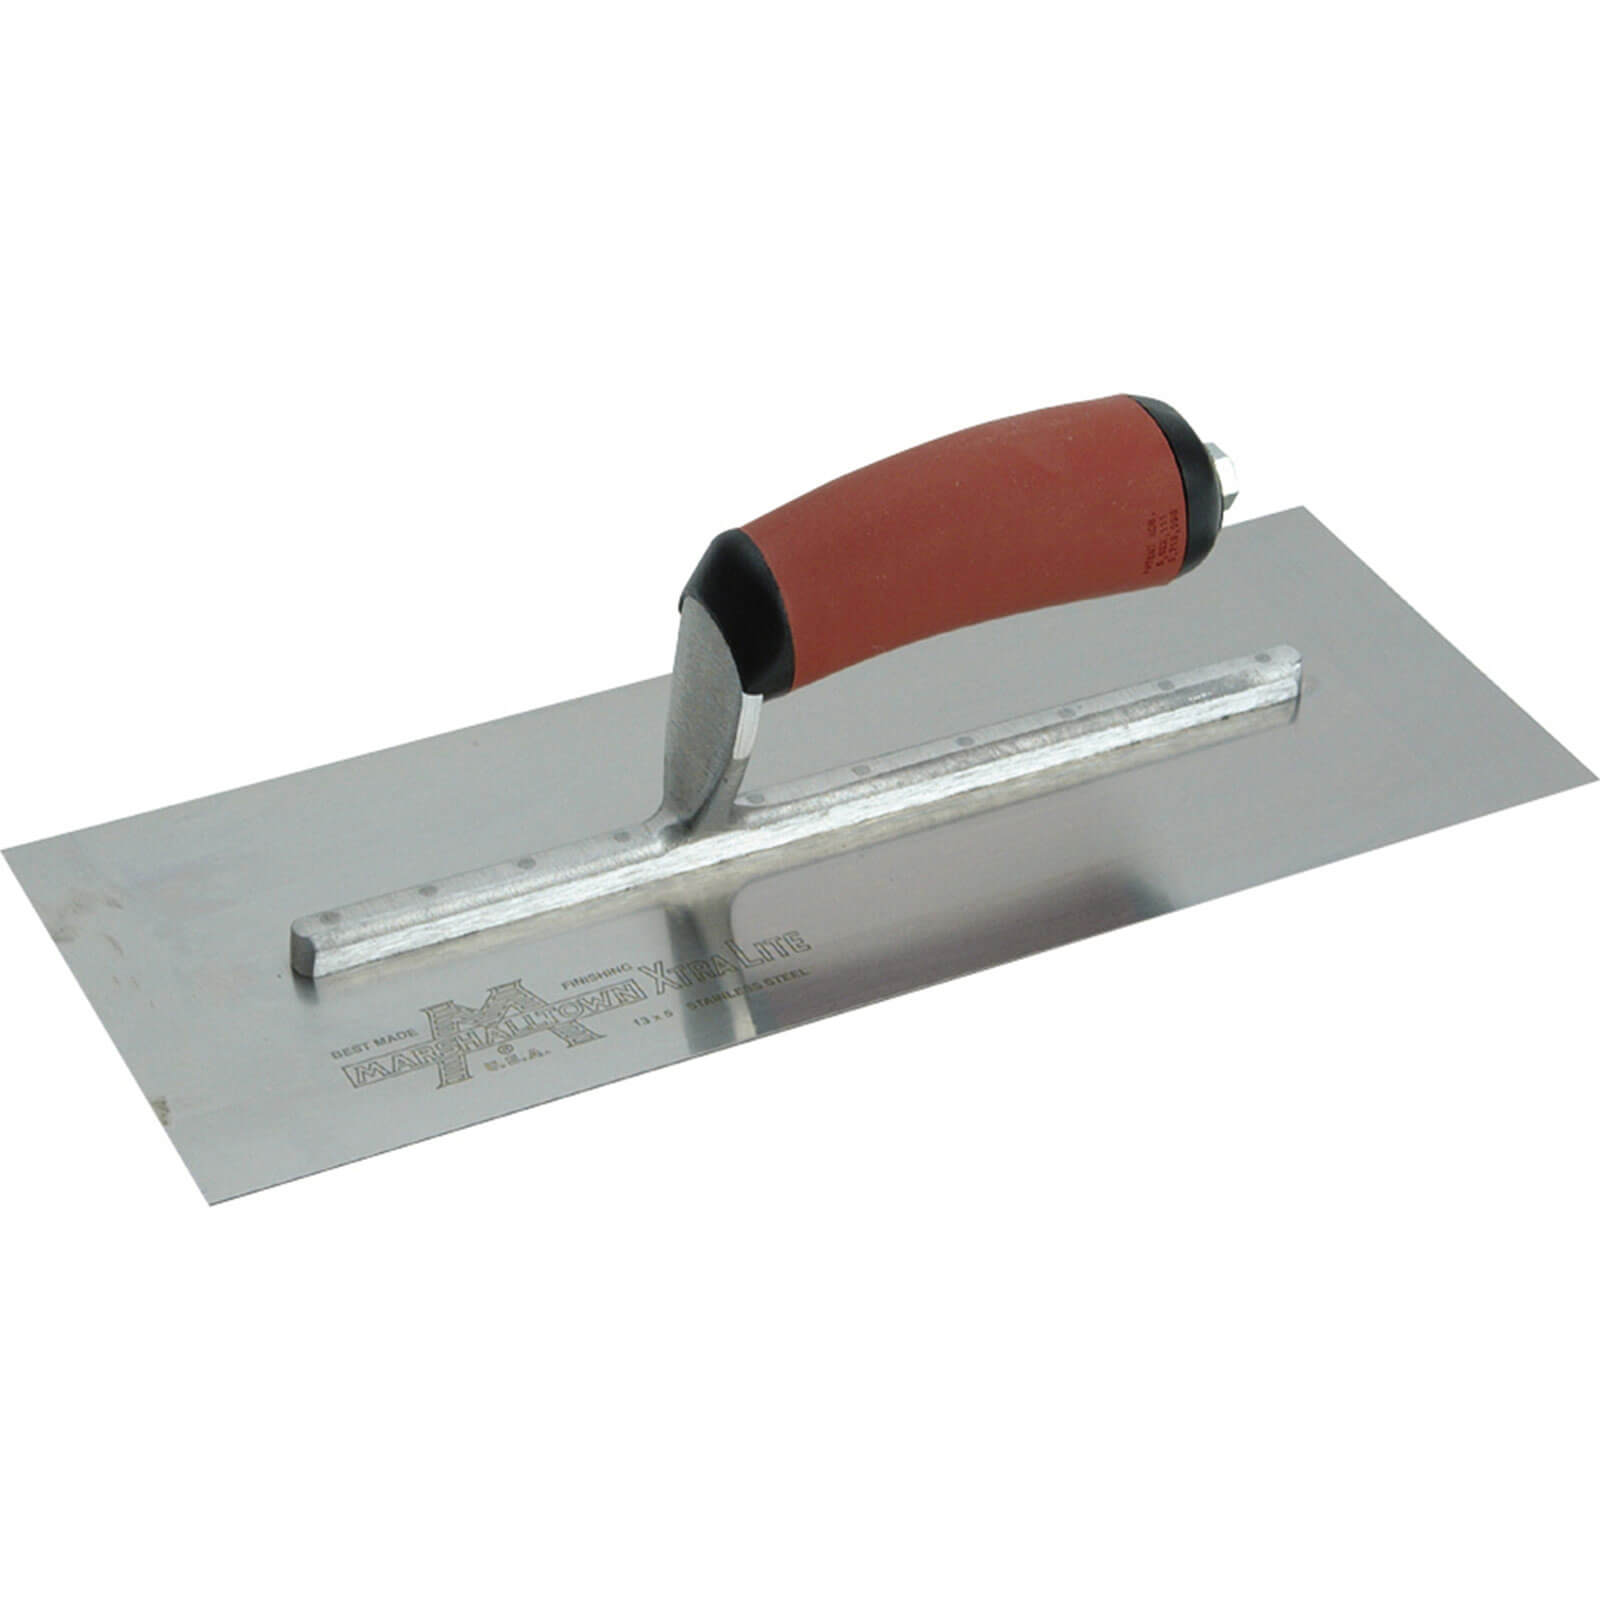 "Image of Marshalltown Stainless Steel Cement Trowel 14"" 4"" 3/4"""